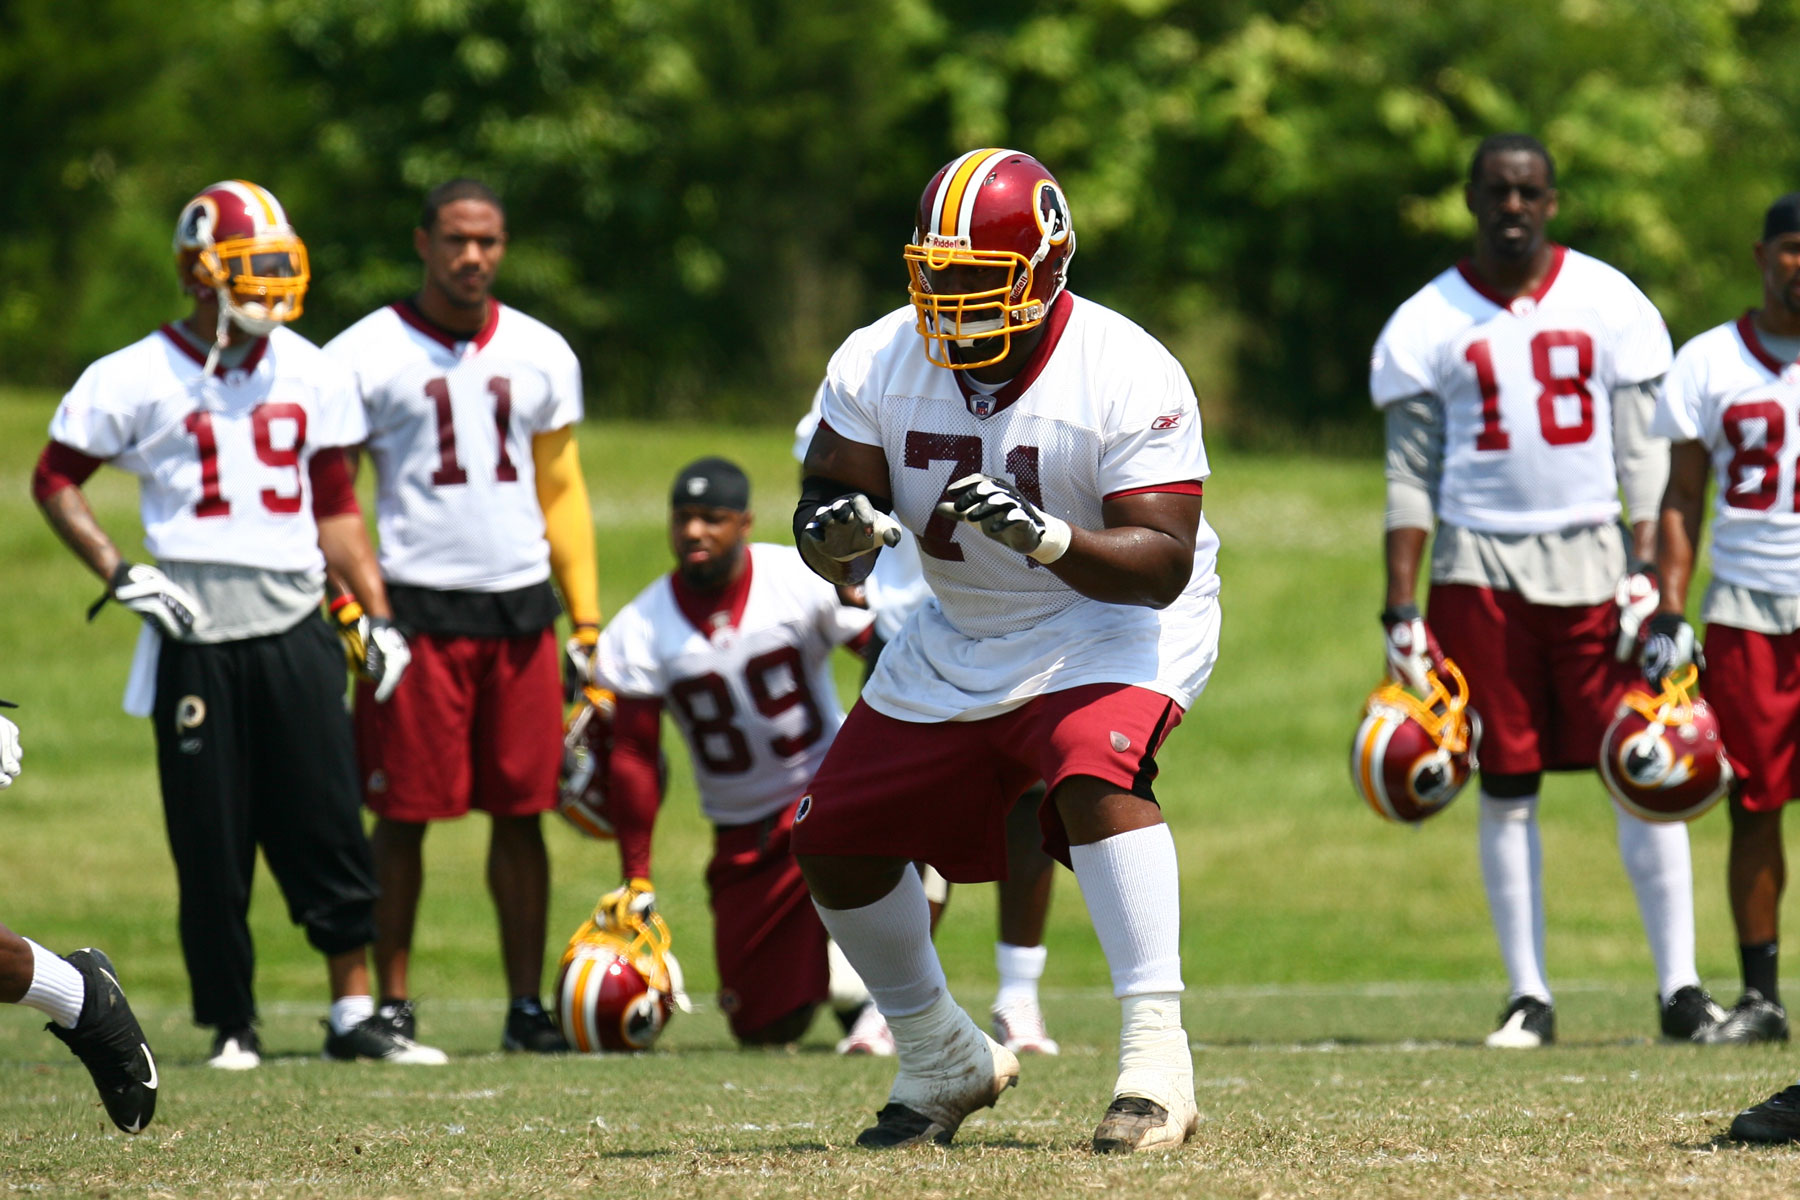 Redskins Offensive Line Not Impressing Out Of The Gates